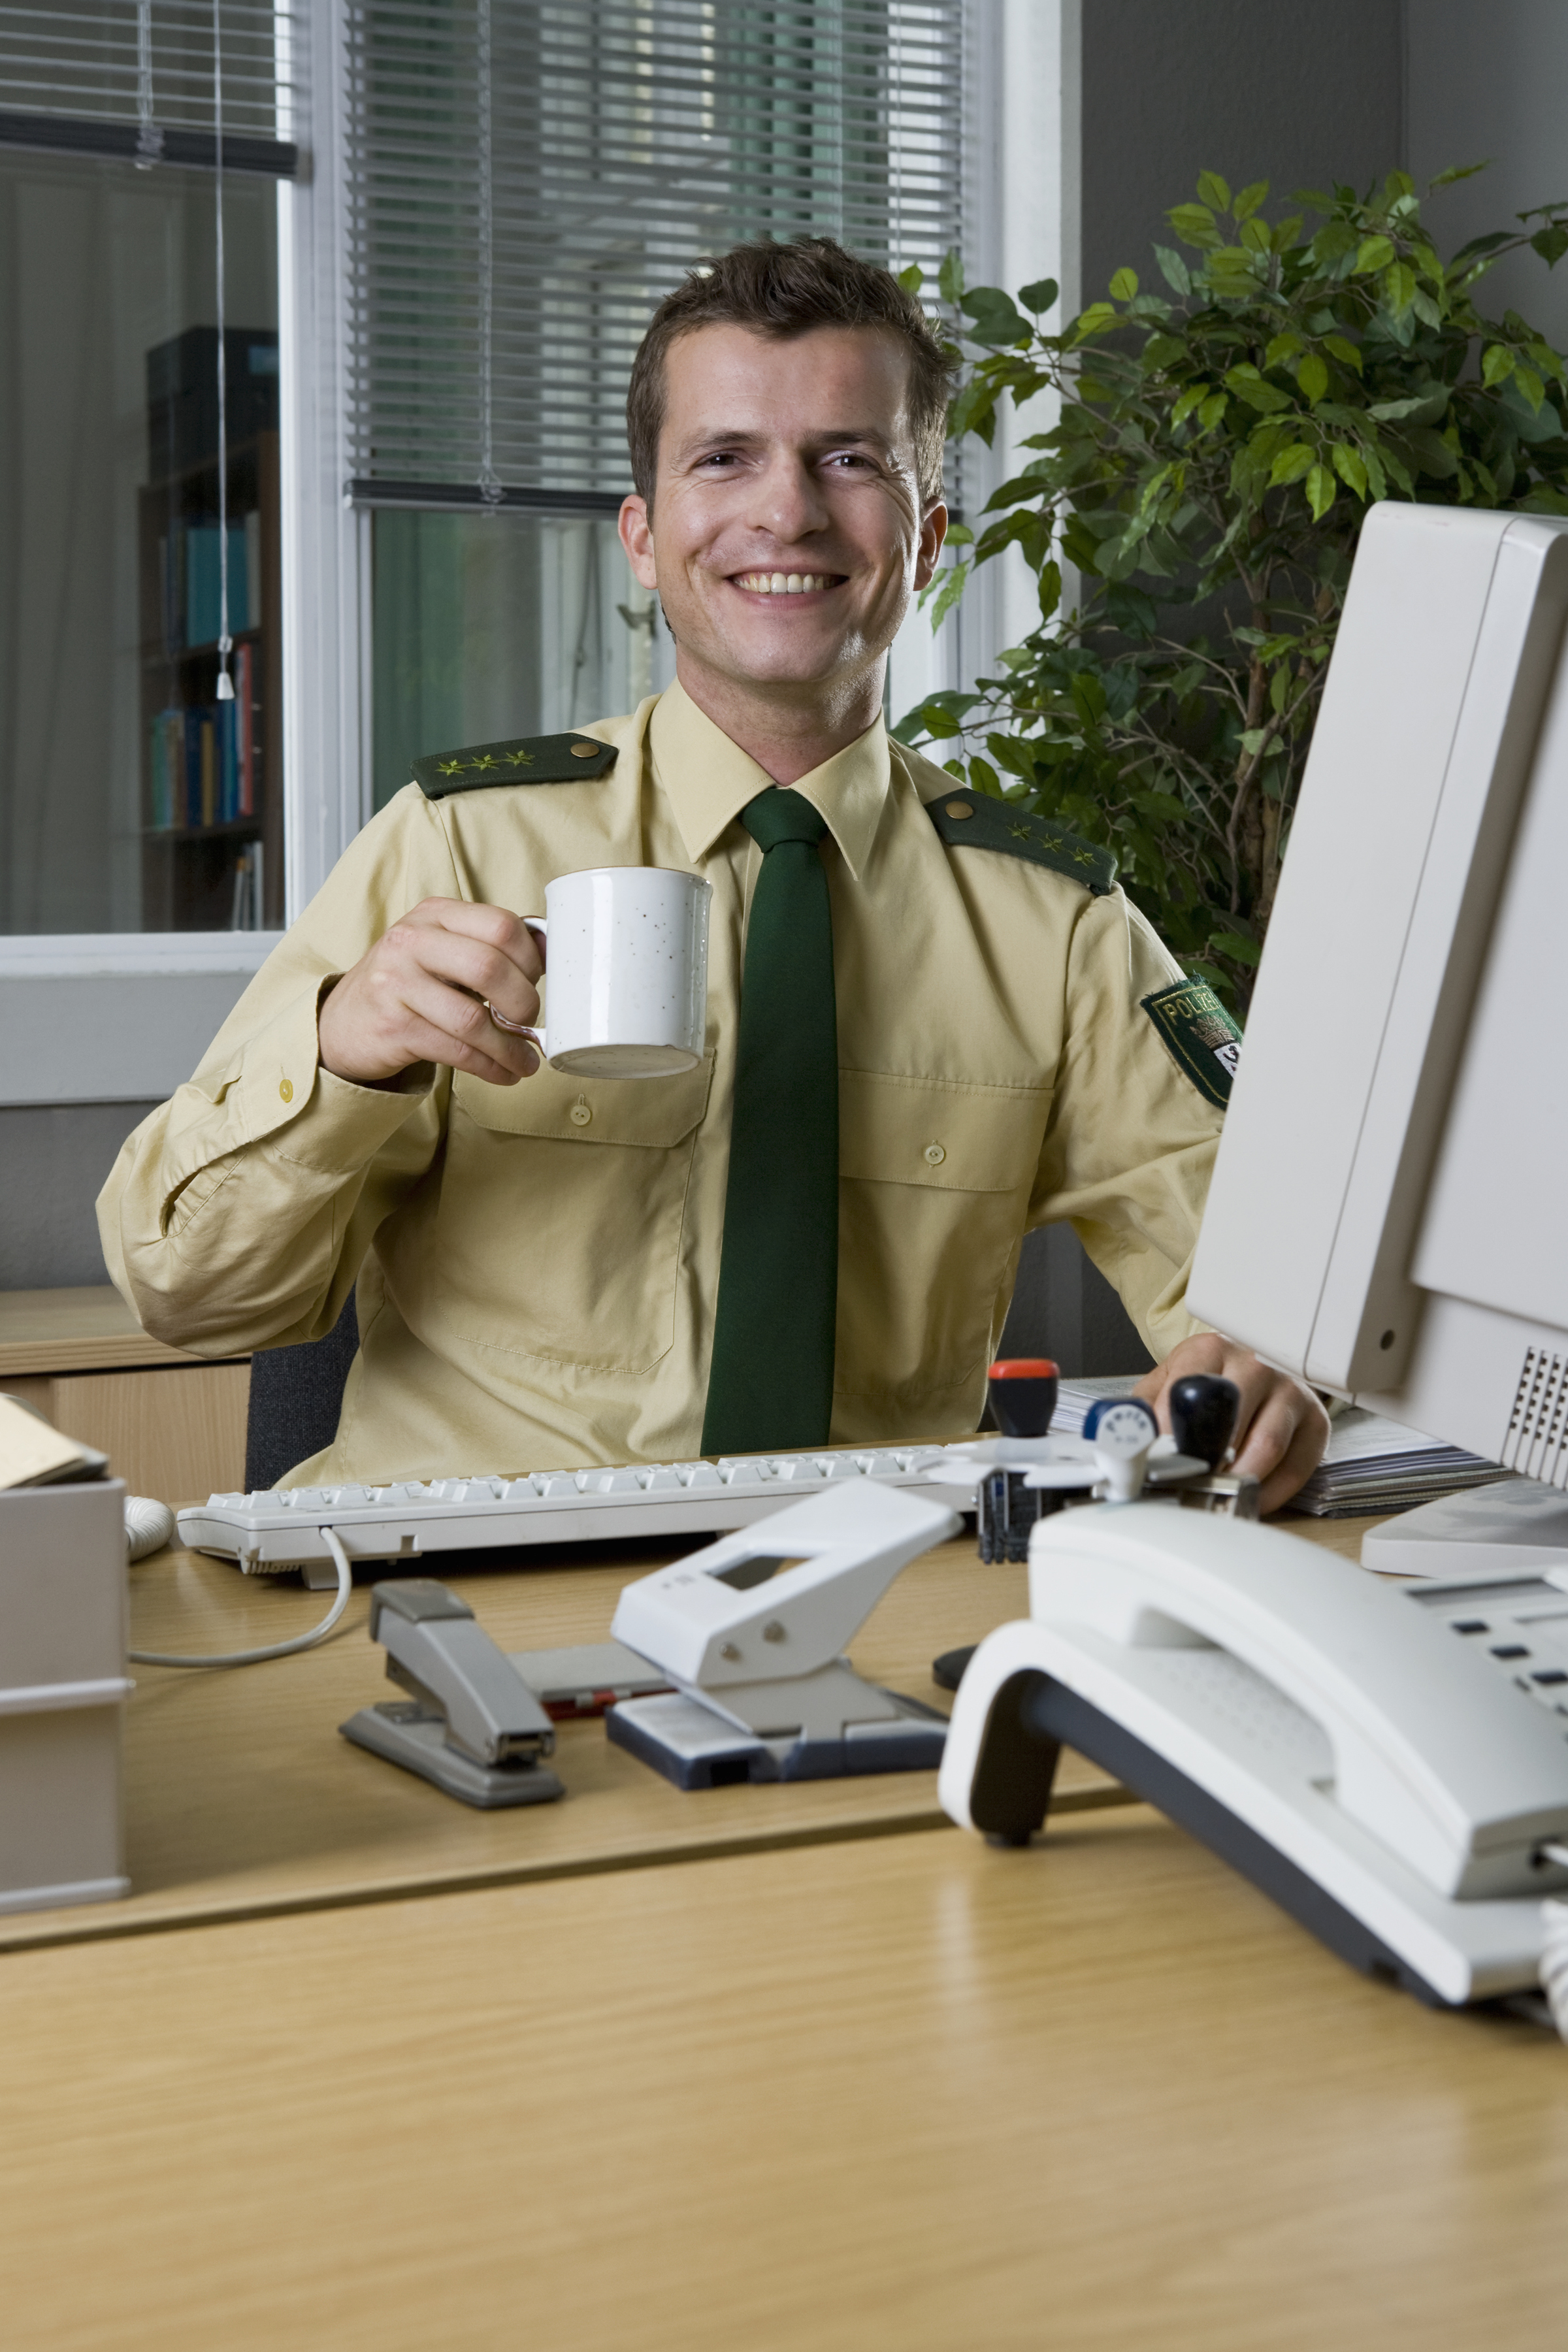 A police officer working in an office